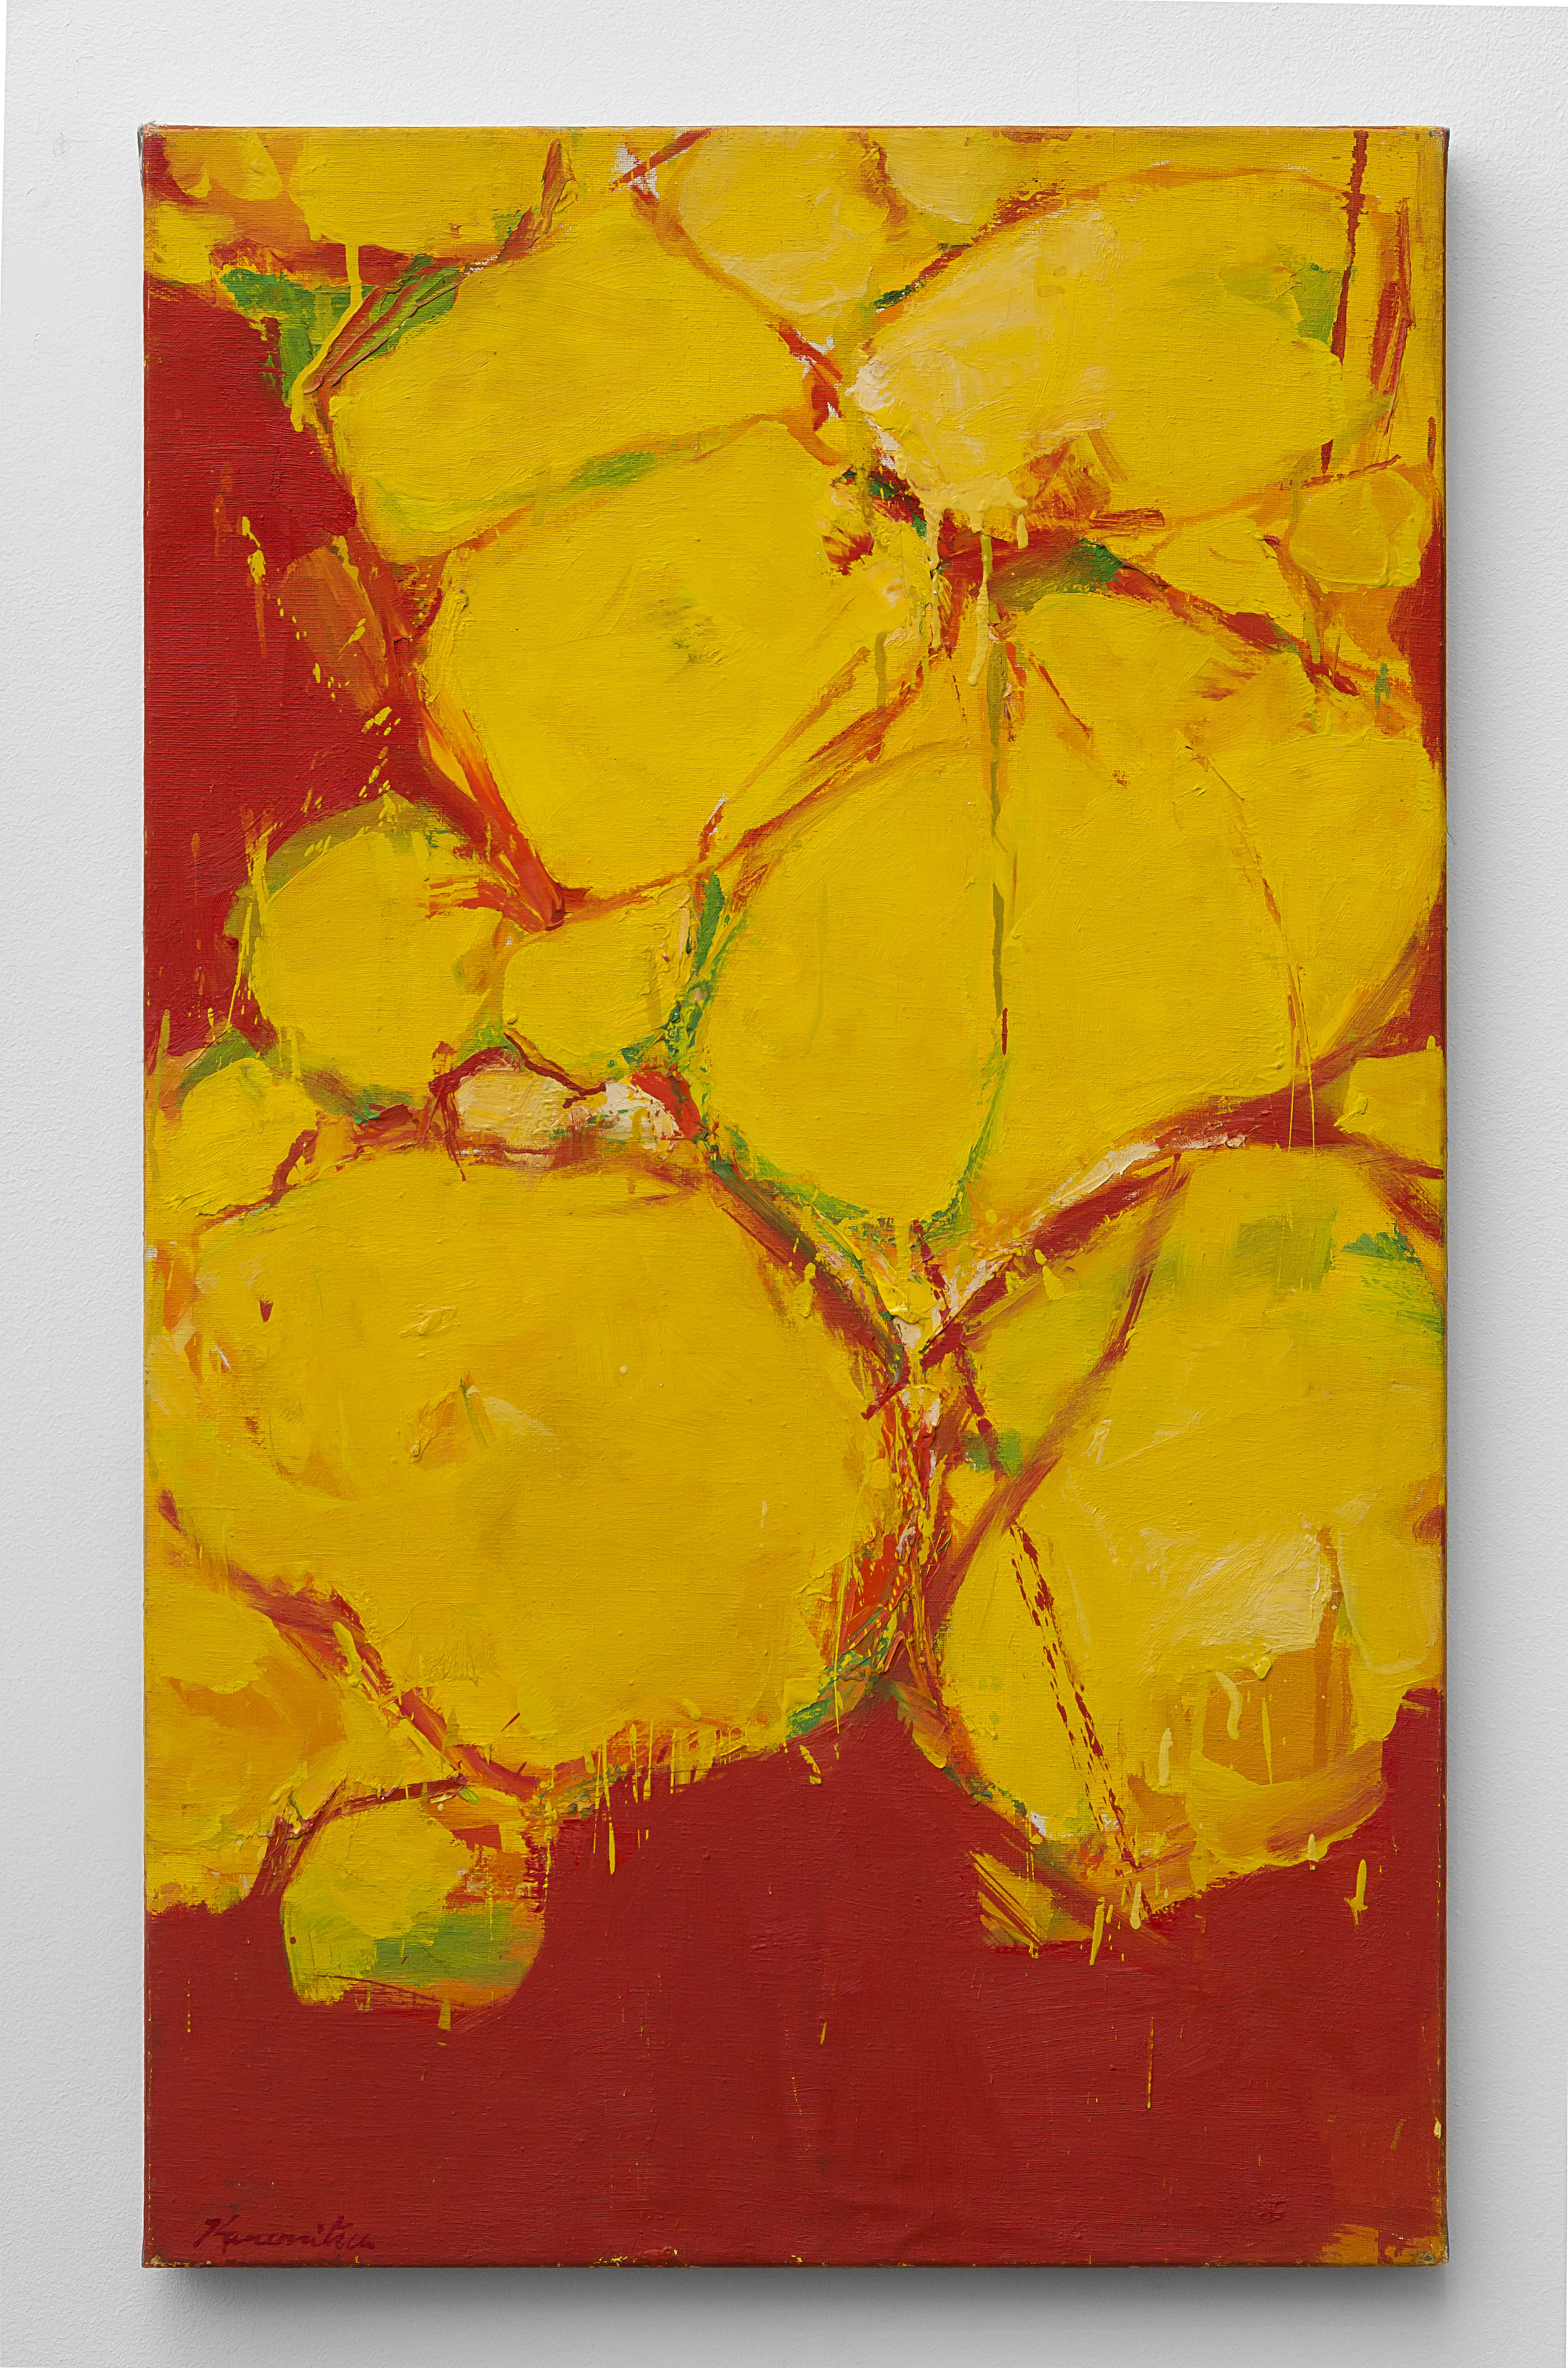 Untitled (Yellow) , 1960  acrylic on canvas 30 x 18 inches; 76.2 x 45.7 centimeters  $12,000